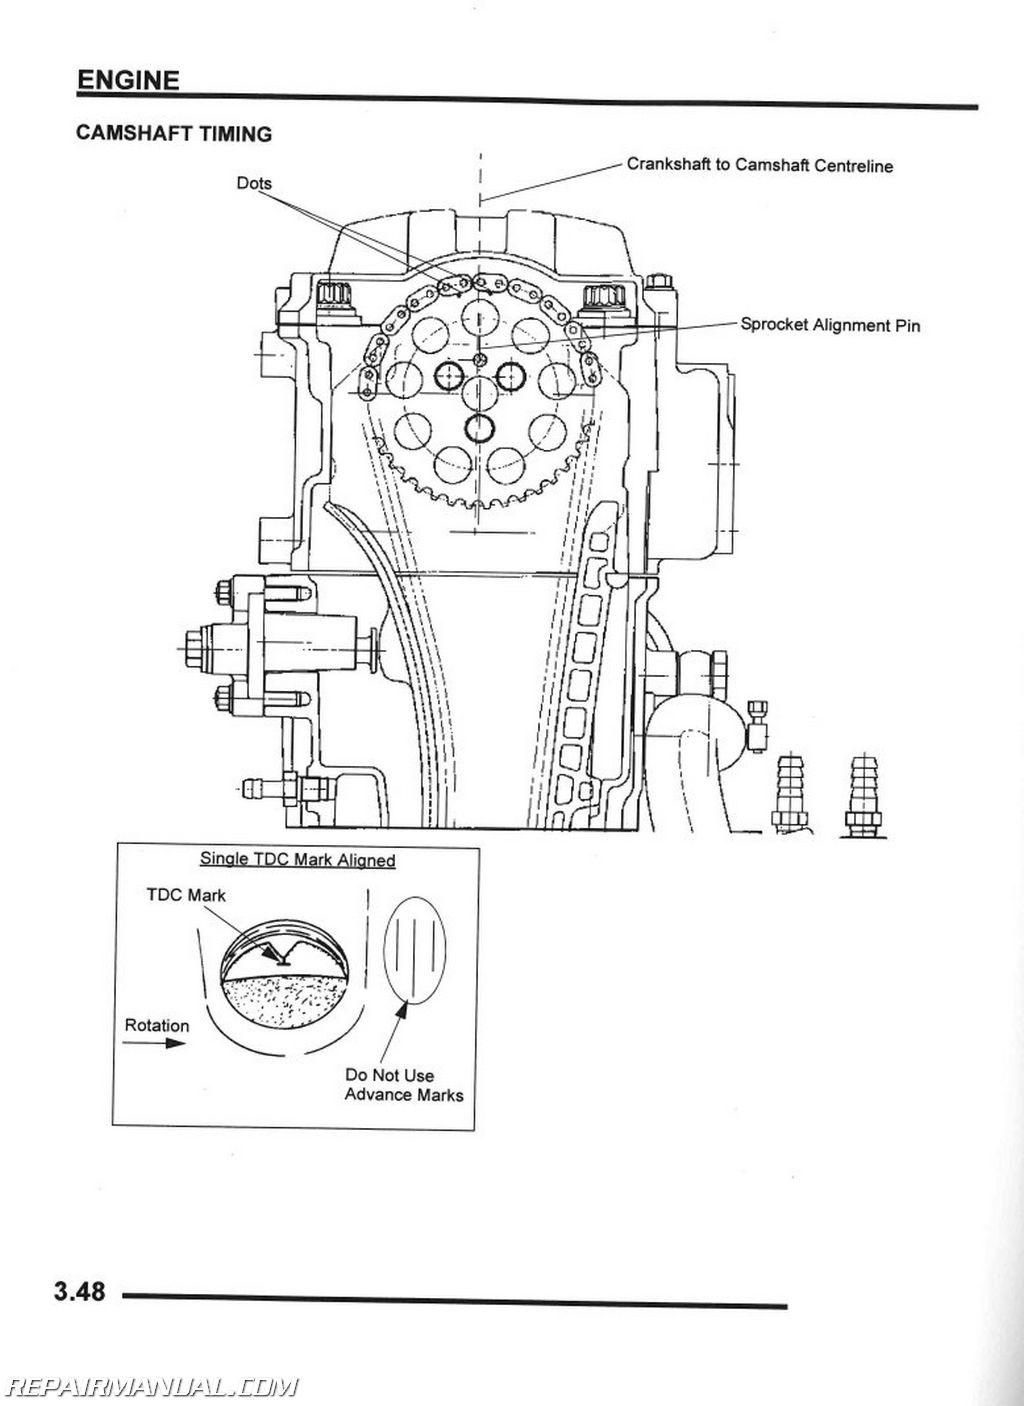 Polaris 500 2x sportsman 2007 wiring diagram product wiring diagrams dorable 97 polaris sportsman 500 wiring diagram gallery simple rh littleforestgirl net 1996 polaris sportsman 500 wiring diagram 1996 polaris sportsman 500 publicscrutiny Images